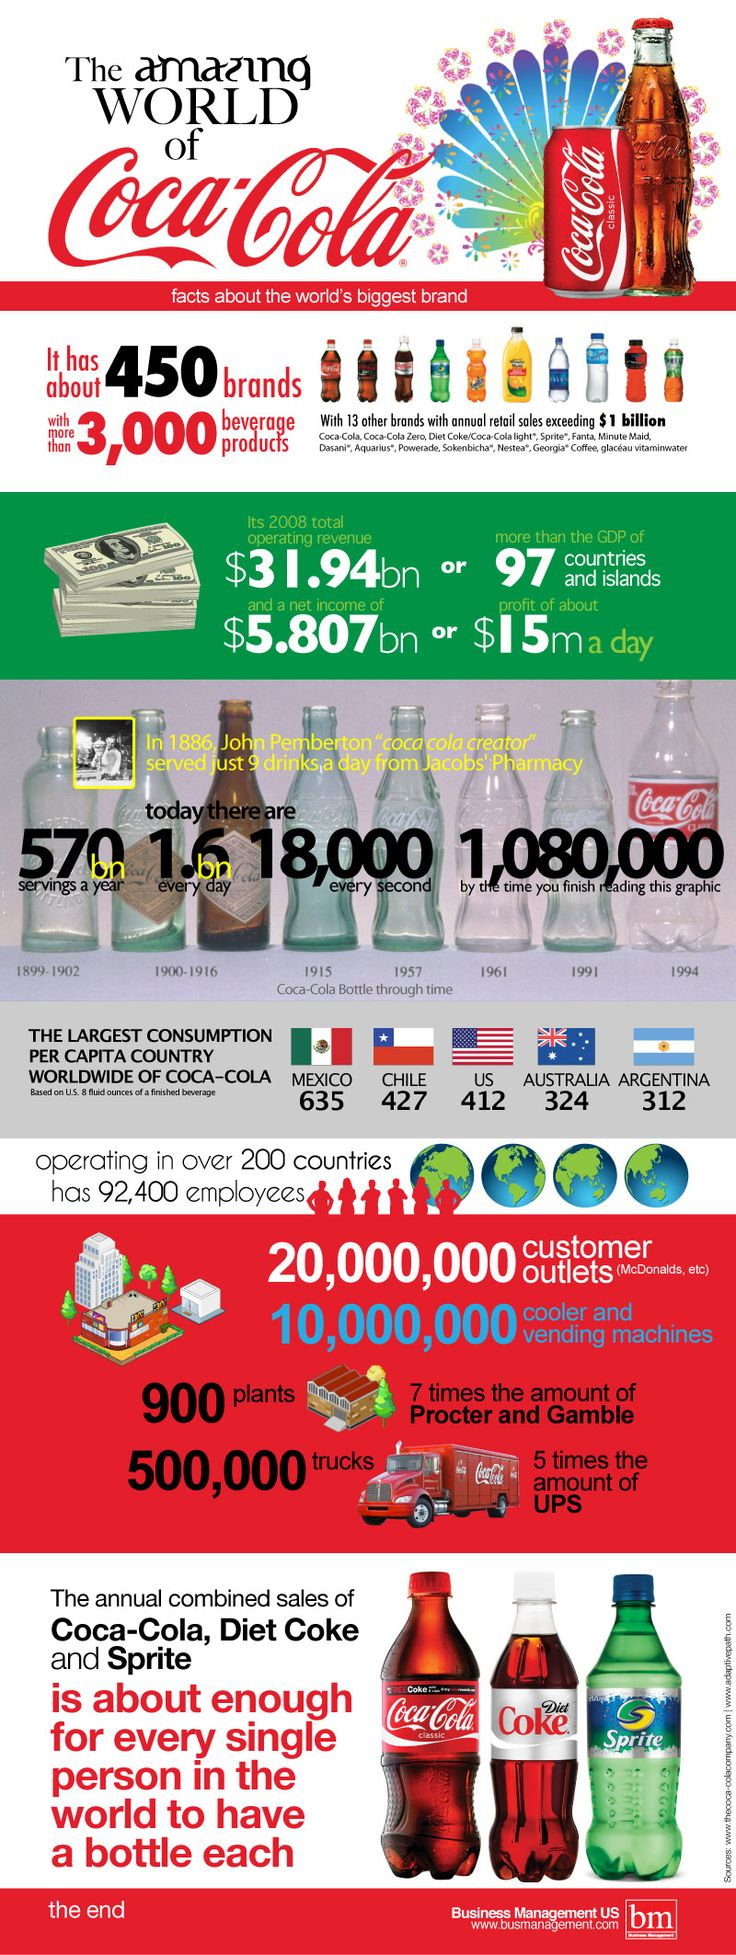 Currently, Coca-Cola is so famous brand and it is predicted that 1.5 billion Coca-Colas are served every day.